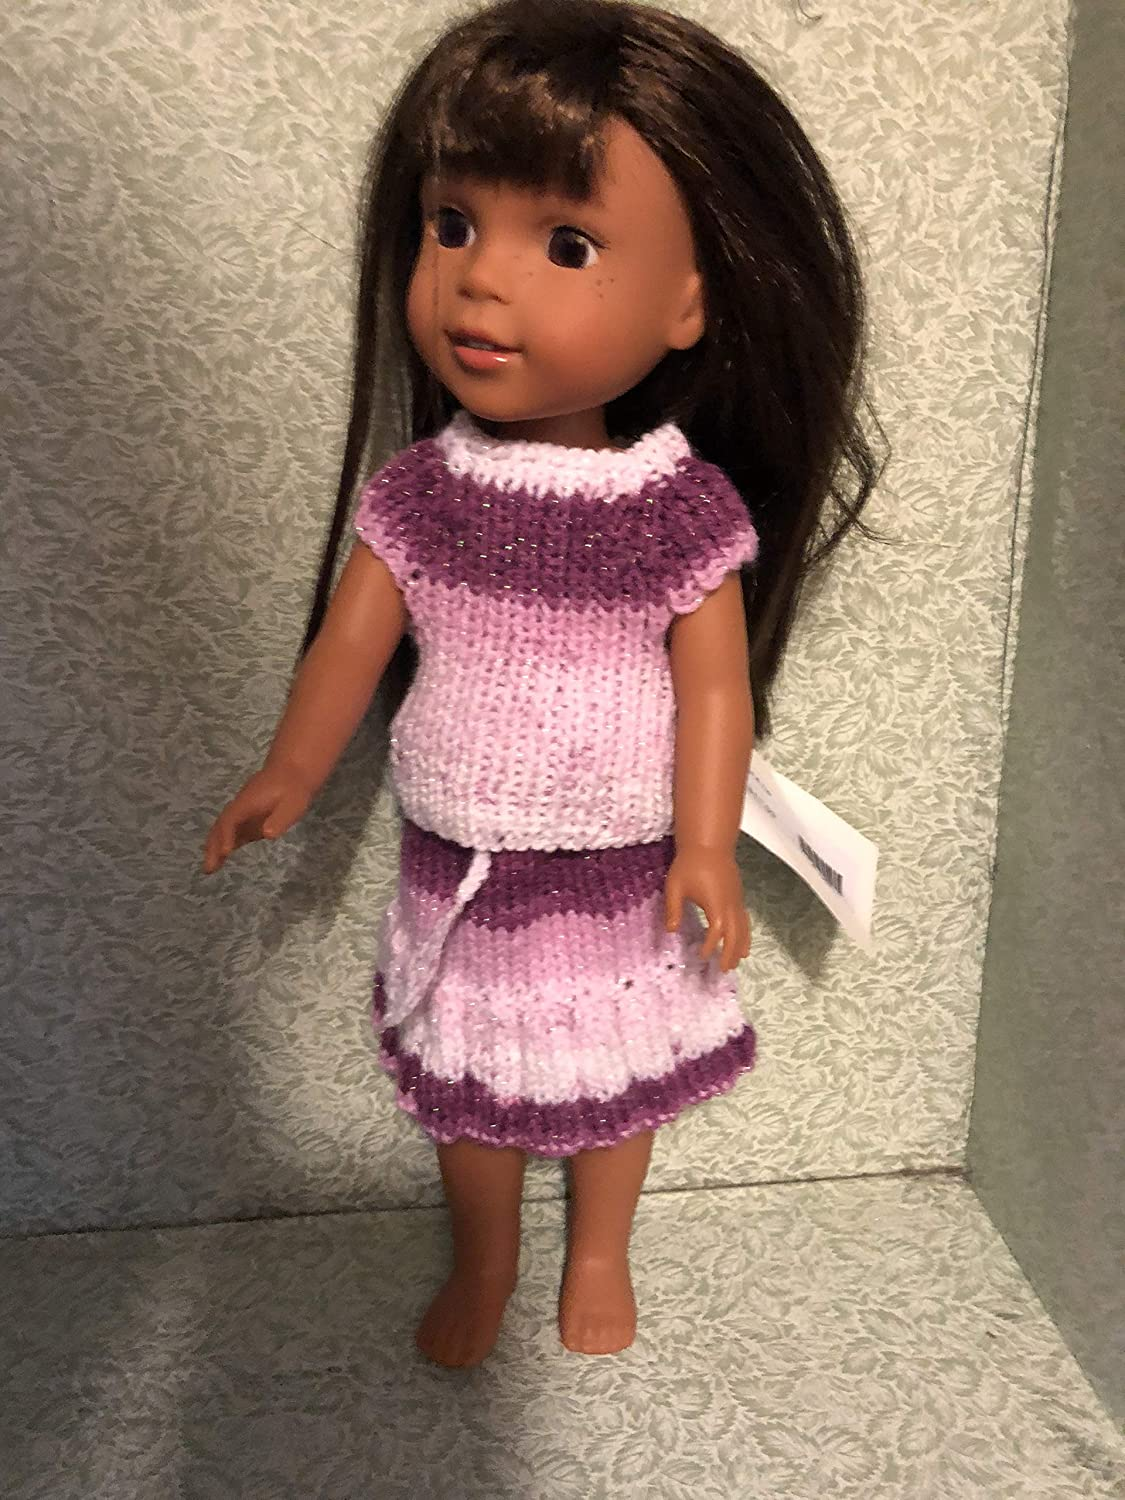 Welie Wisher Doll Skirt and Top Hand Knitted